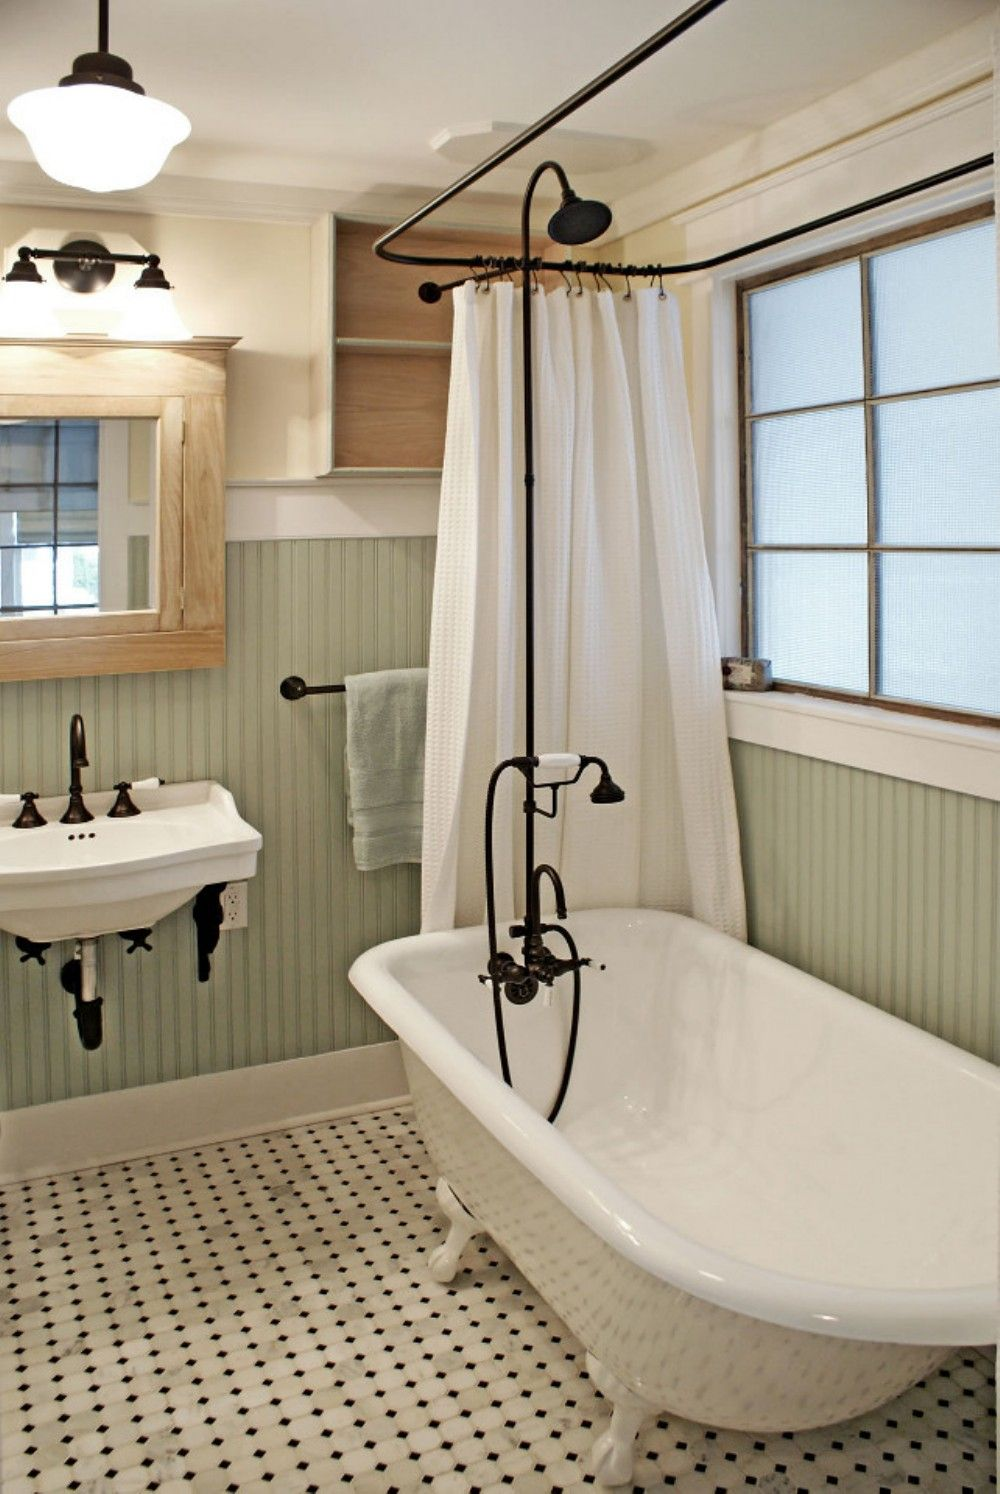 23 Amazing Ideas About Vintage Bathroom Vintage Bathrooms Vintage And Bath